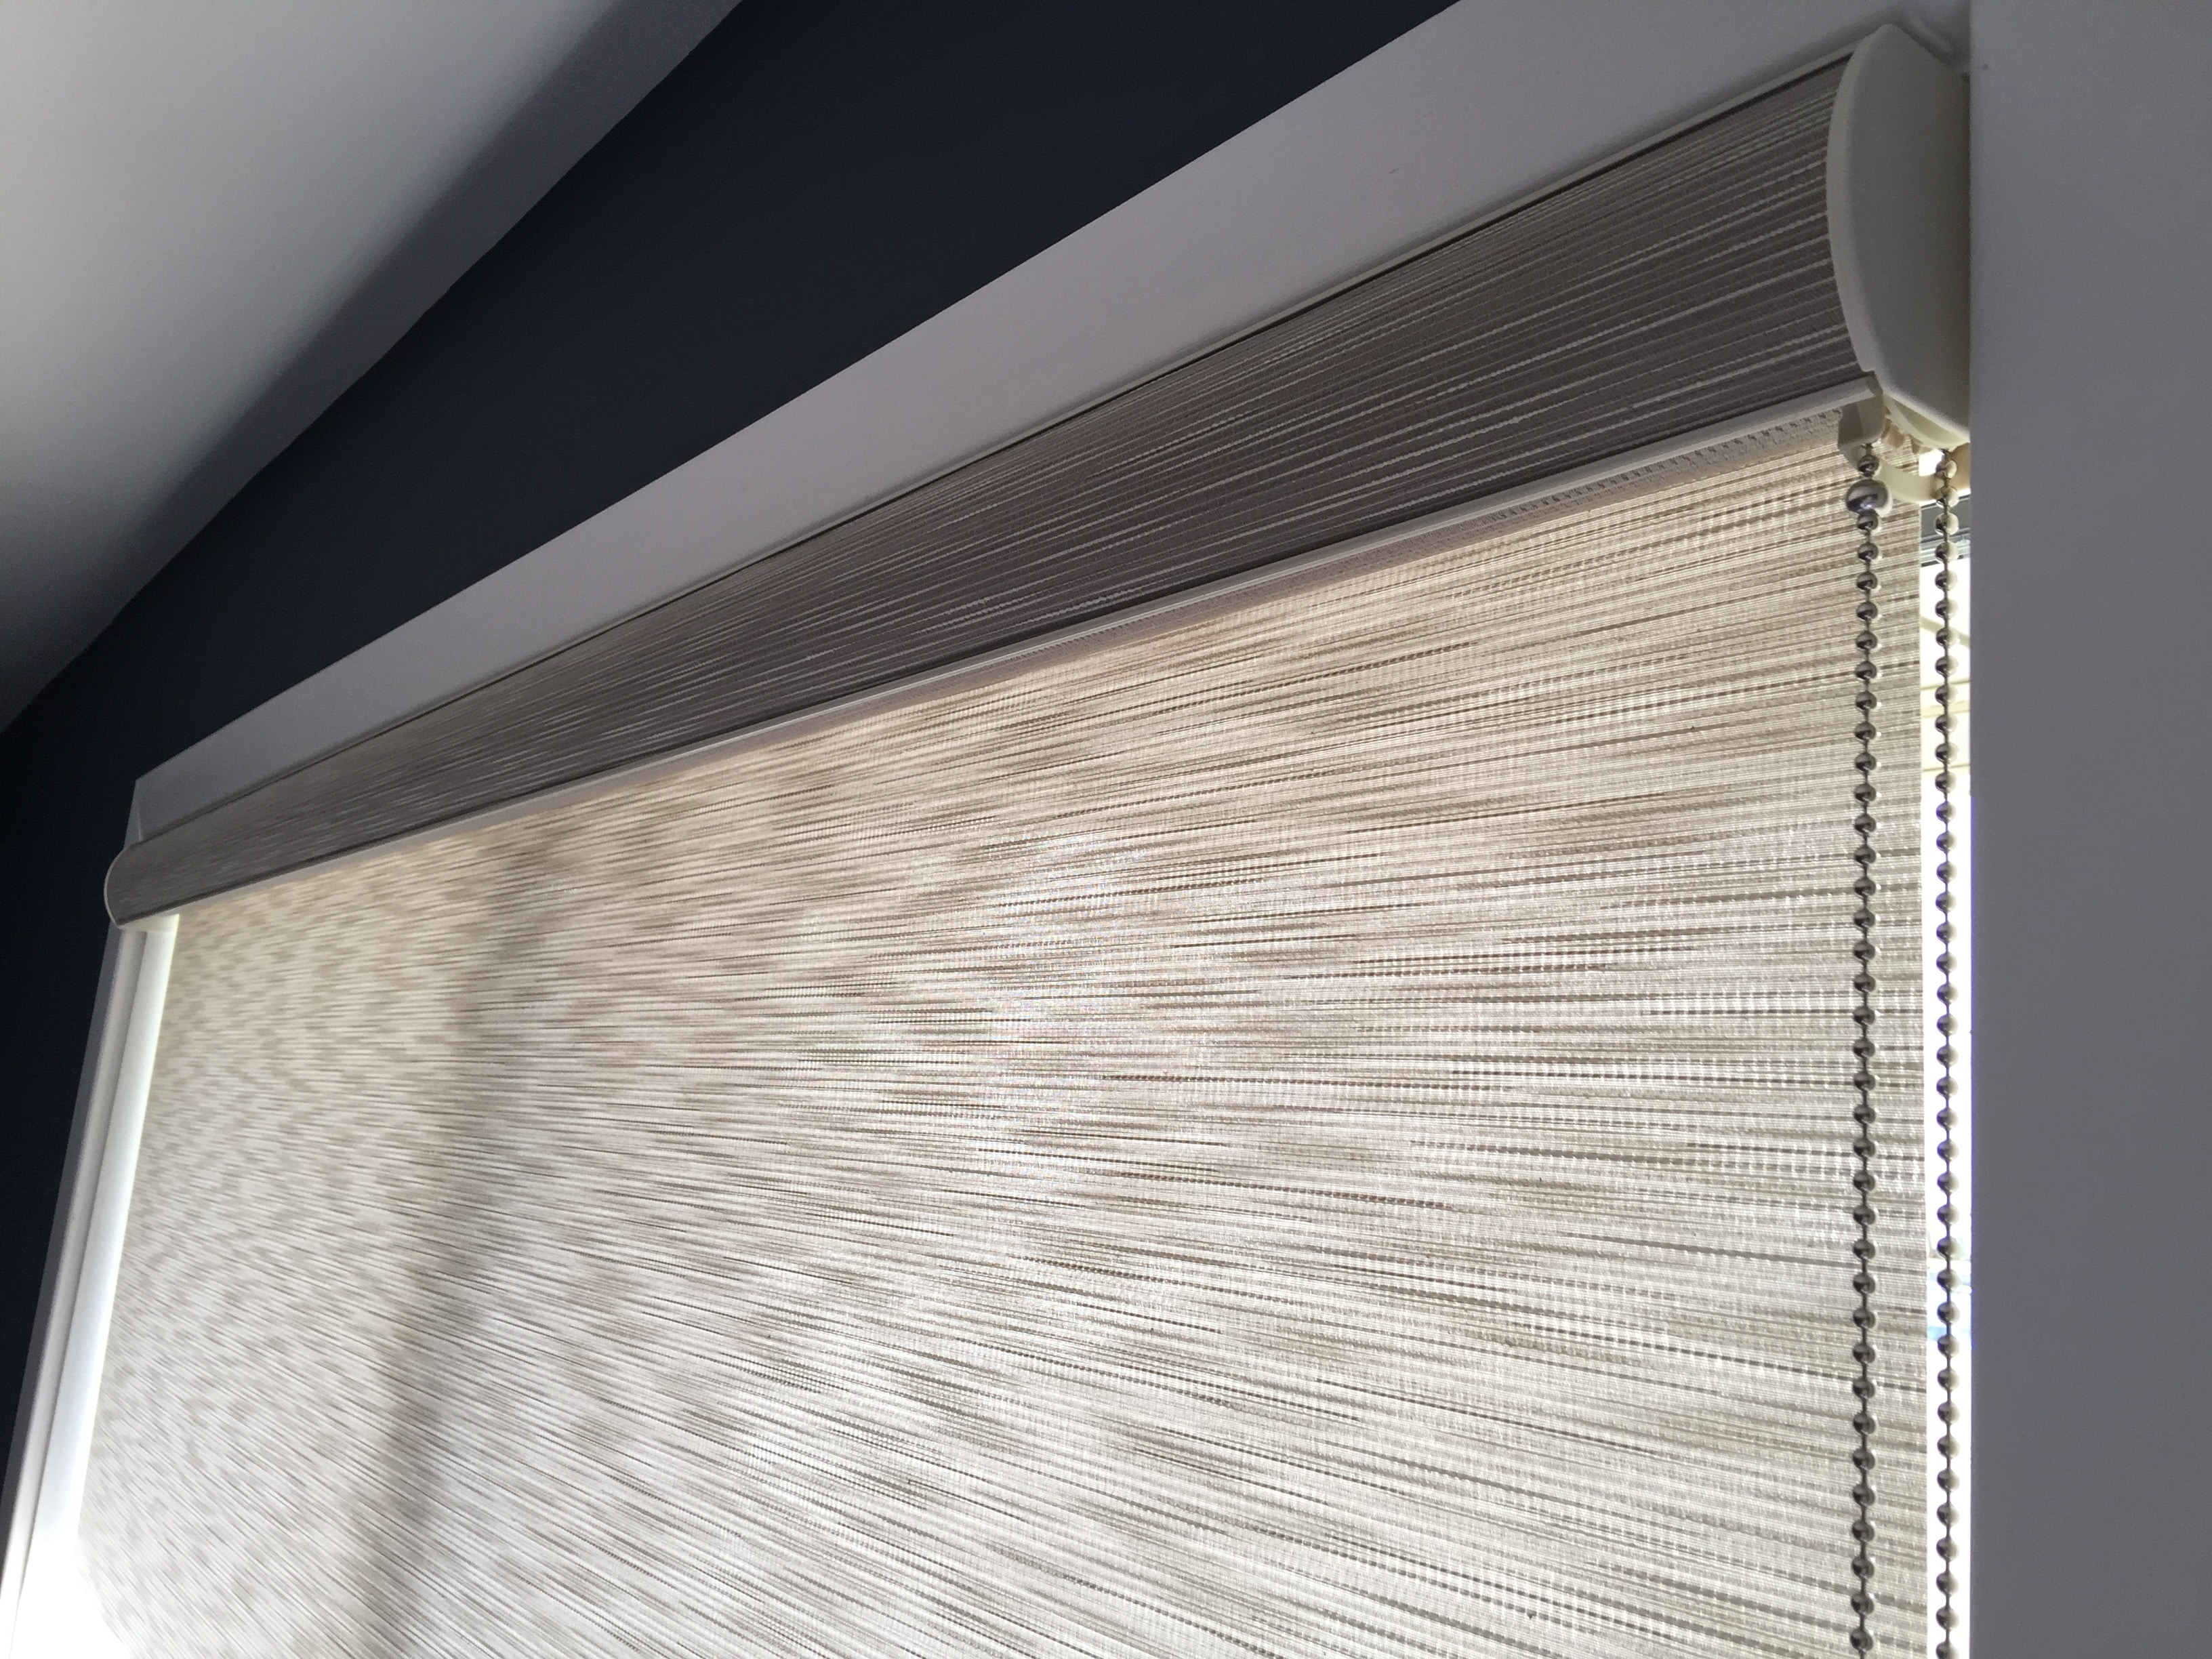 mirage solar slats summer keep for com lifestyleblinds near cool these house me stores dorothy comments inch replacement blind warm stone and customer closed winter in the blinds opted